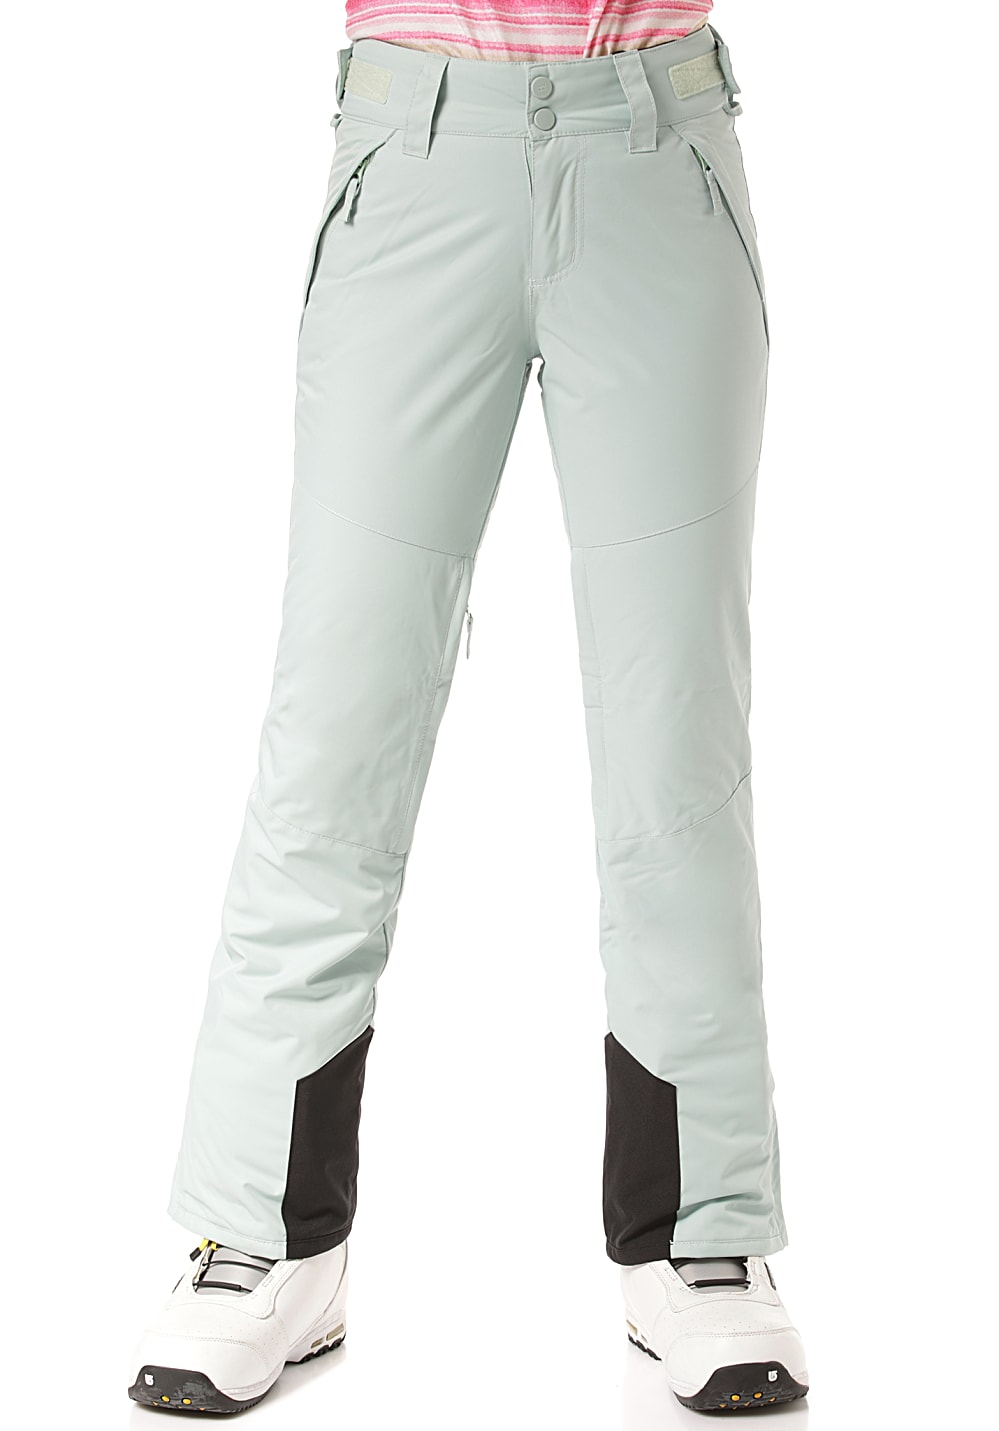 Hosen - BILLABONG Malla Snowboardhose für Damen Blau  - Onlineshop Planet Sports